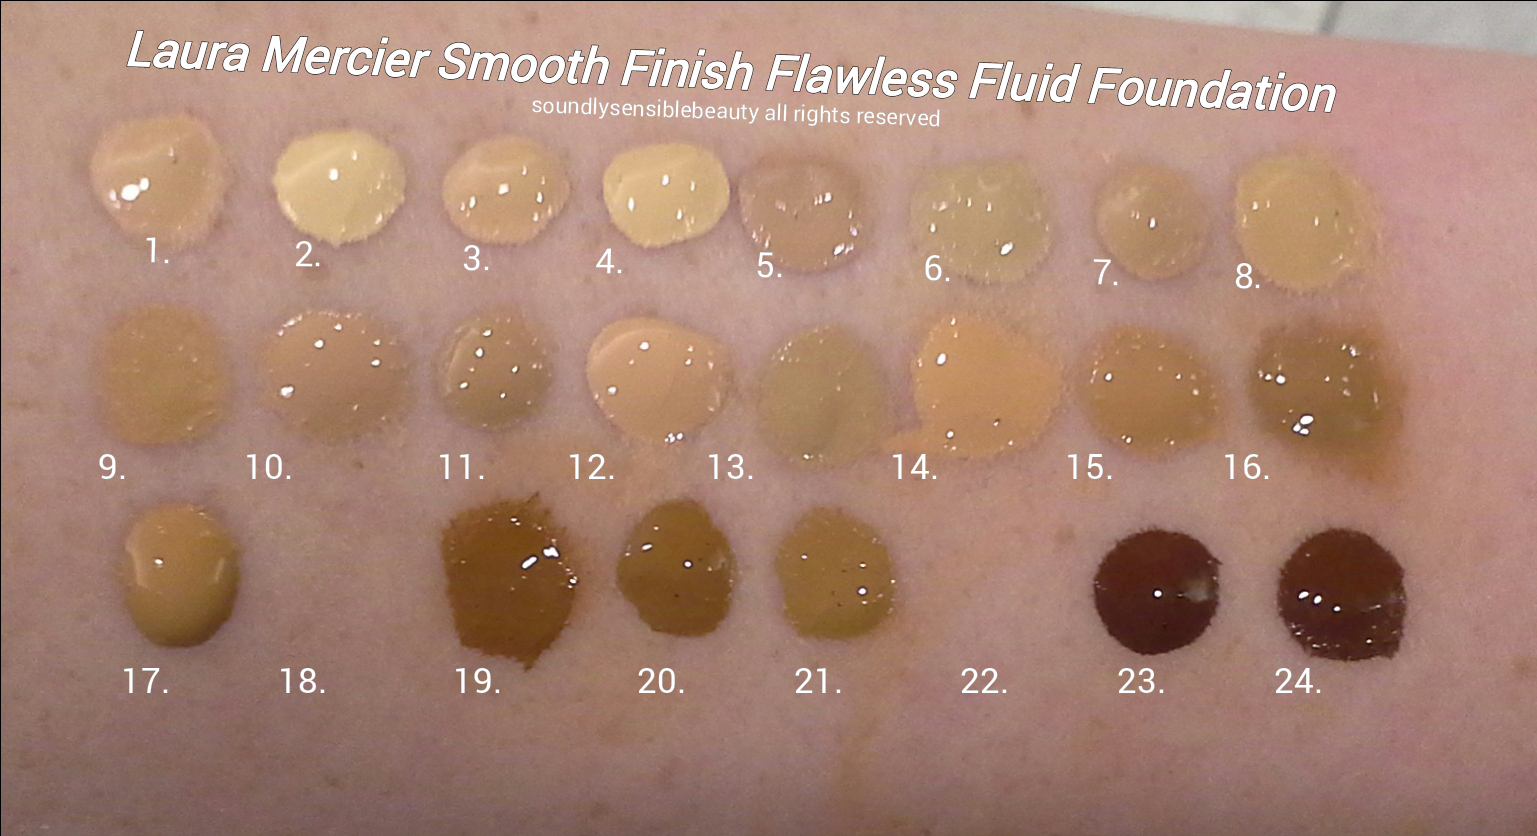 Laura Mercier Smooth Finish Flawless Fluide, Fluid Foundation: Review & Swatches of Shades  Shell, Creme, Vanilla, Ivory, Ecru, Cashew, Linen, Macadamia, Butterscotch, Dune, Buff, Honey, Dusk, Golden, Suntan, Praline Maple, Chai*, Nutmeg, Pecan, Amber, Chestnut*, Truffle, Espresso